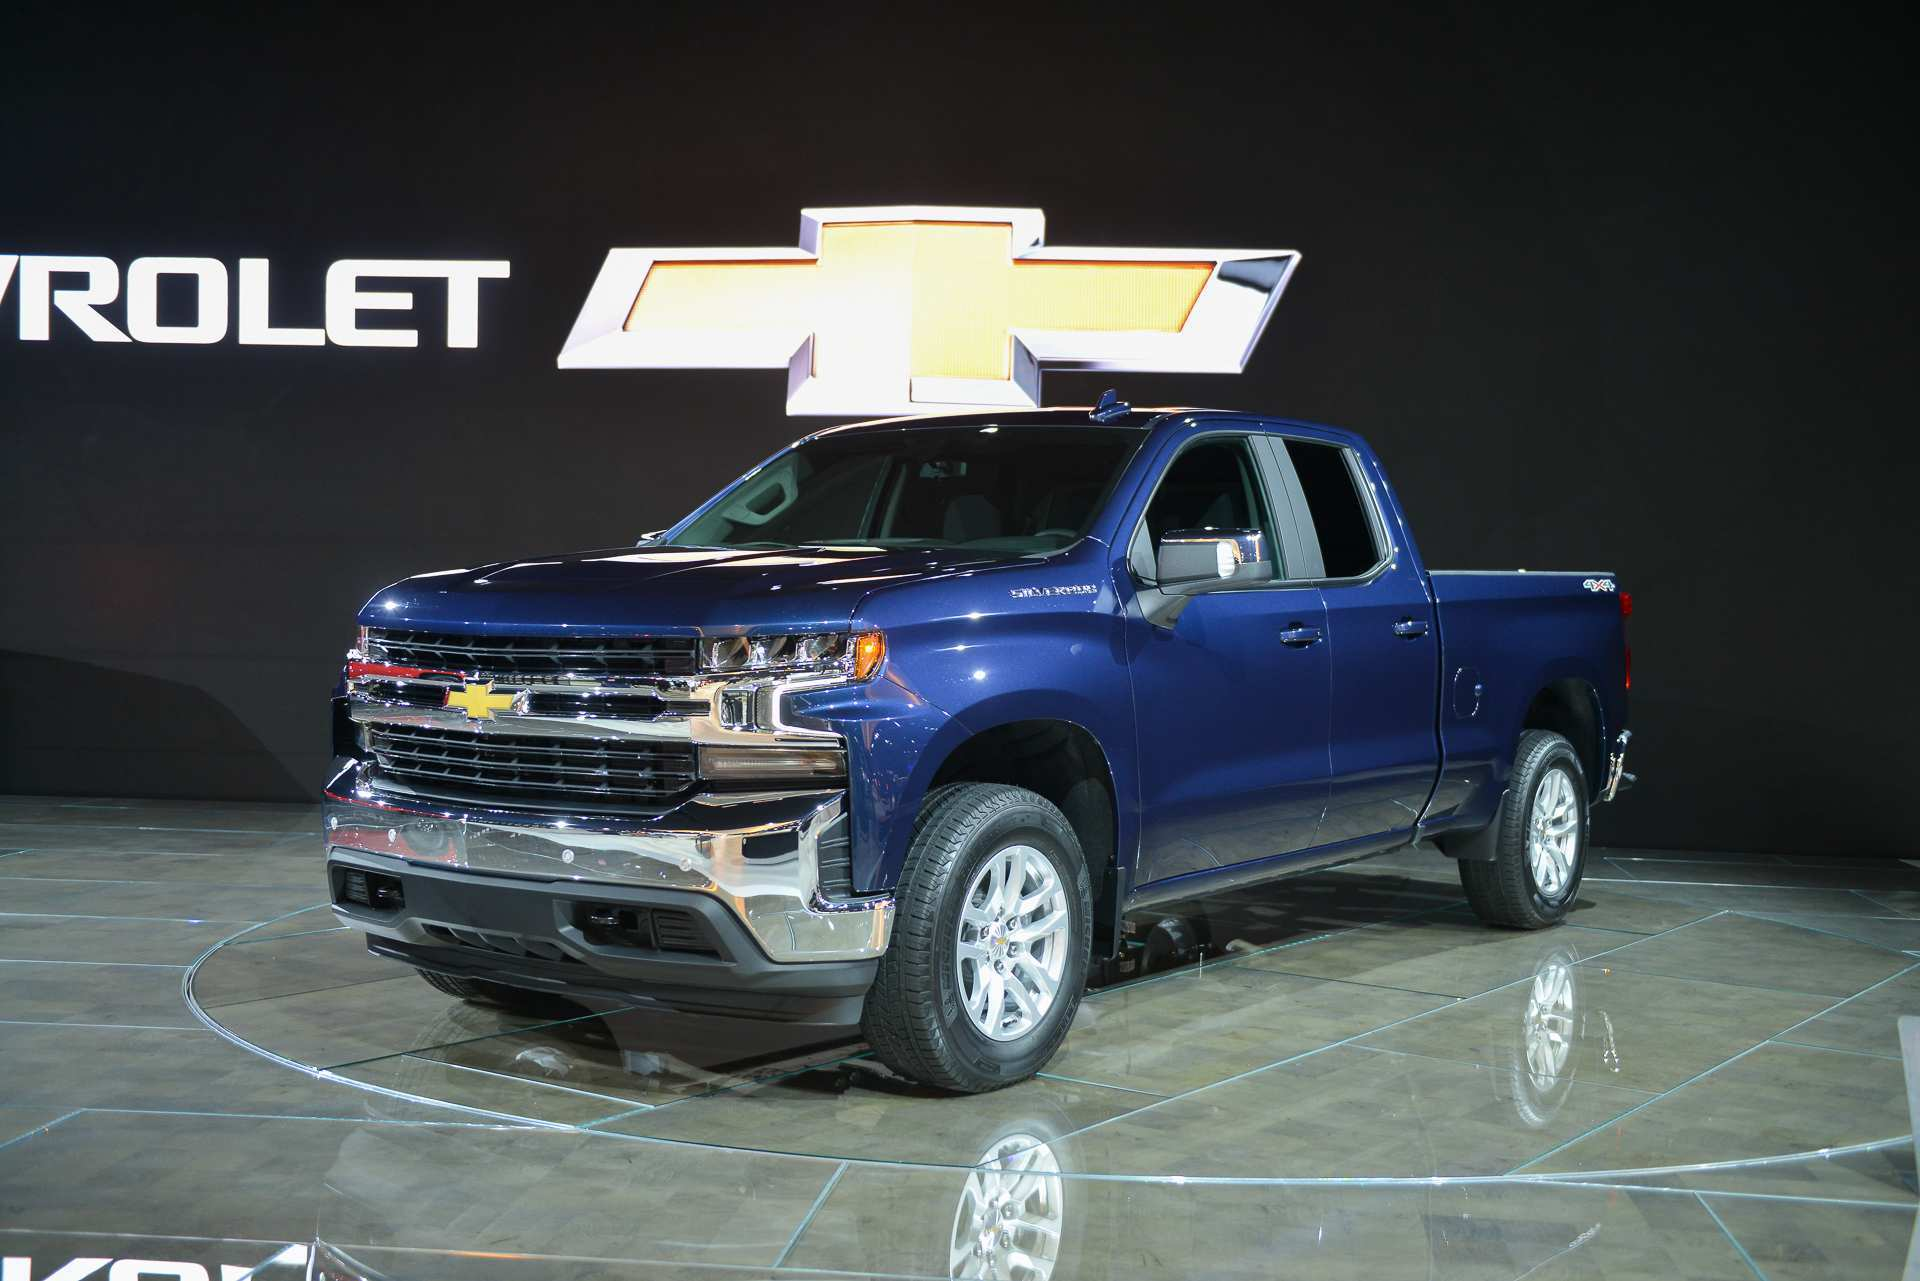 65 Gallery of 2019 Chevrolet 1500 Mpg History for 2019 Chevrolet 1500 Mpg